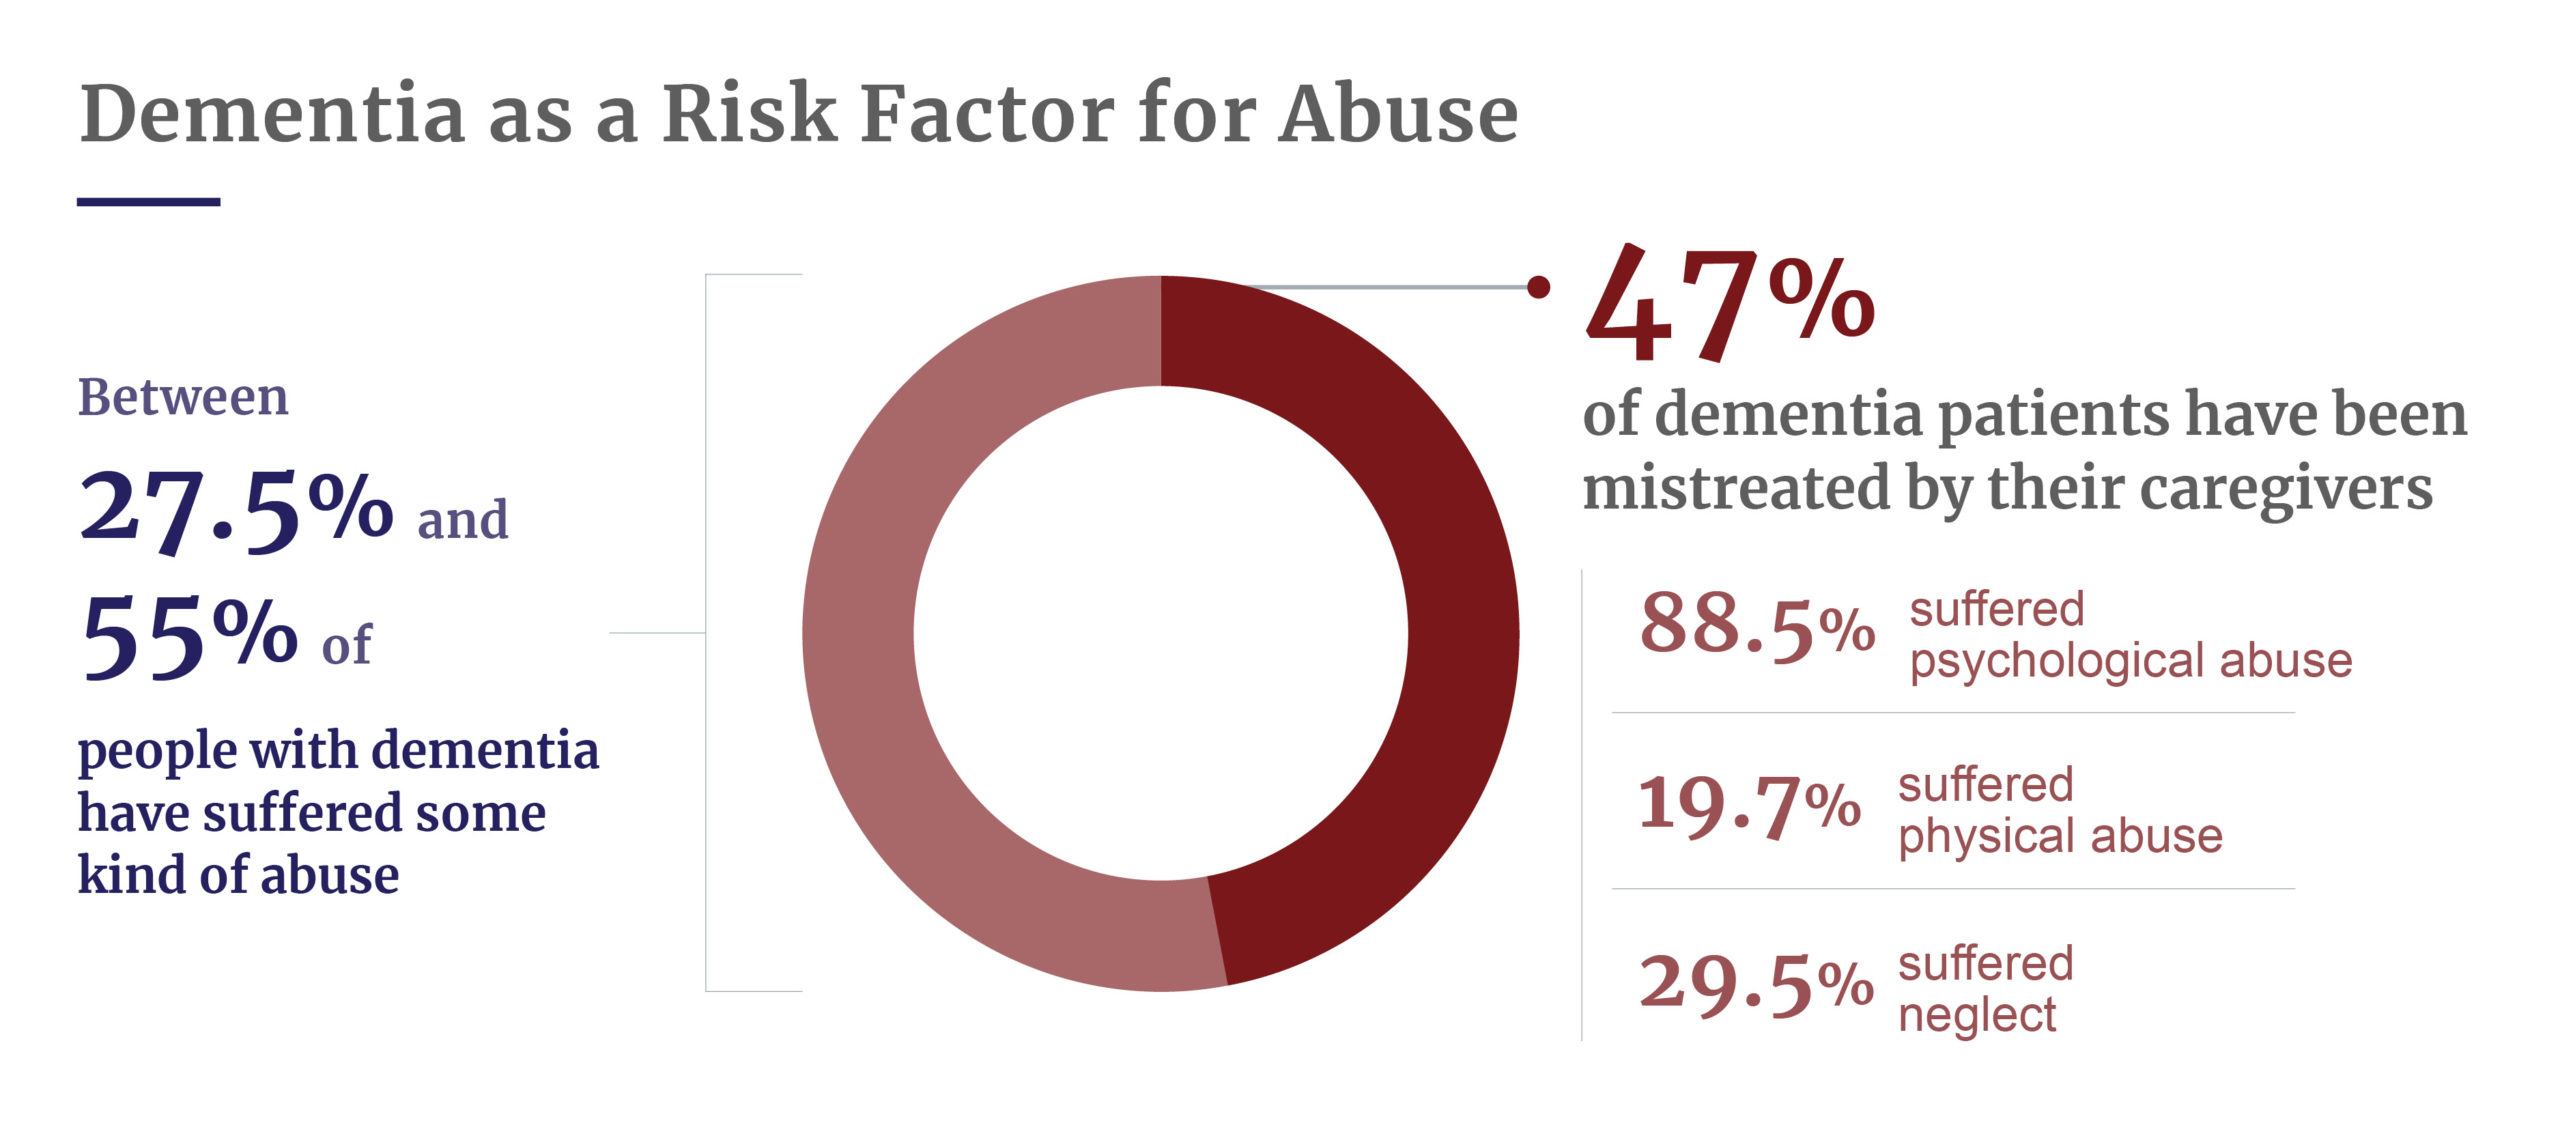 Dementia as risk factor for abuse